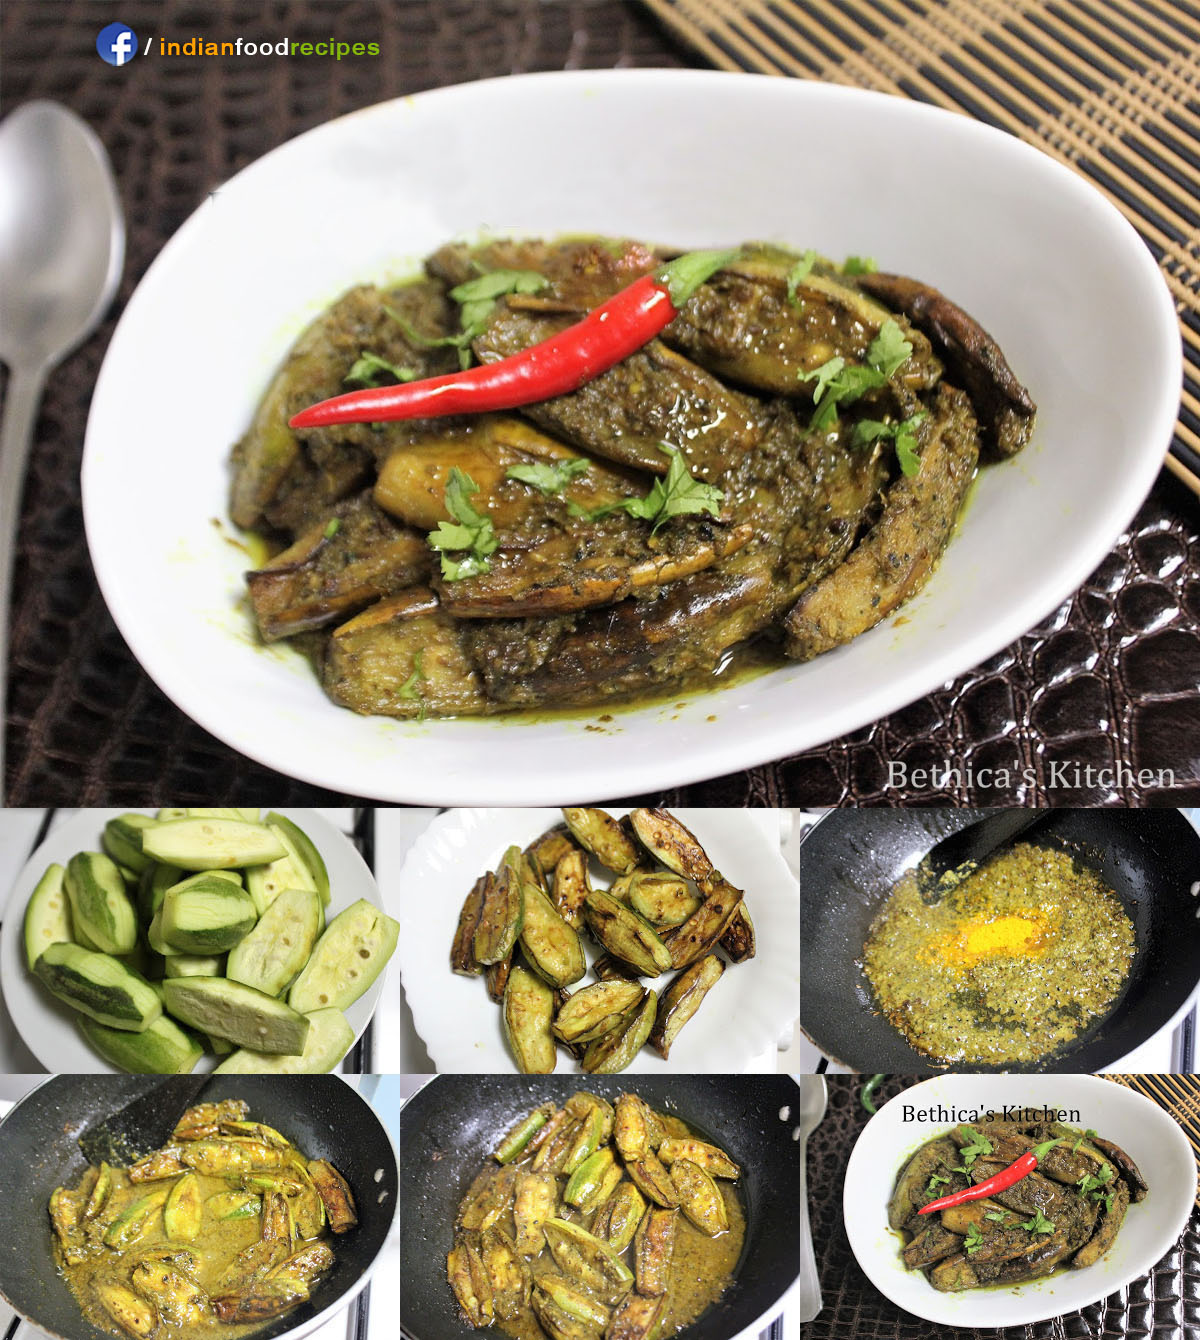 Tel potol parwal curry pointed gourd curry bengali style tel potol parwal curry pointed gourd curry bengali style recipe step by step forumfinder Gallery